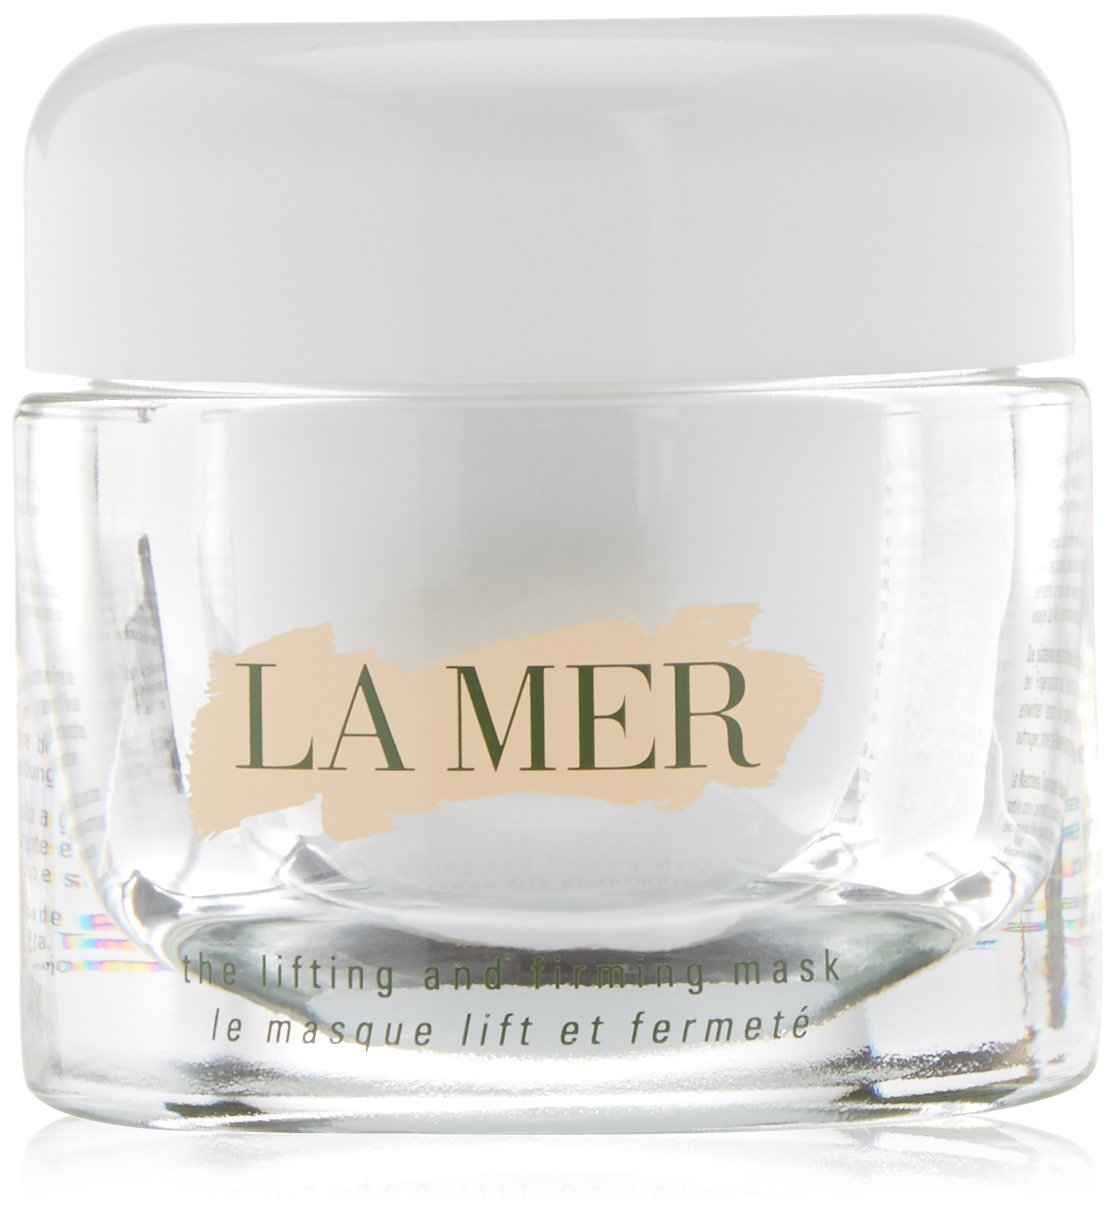 La Mer The Lifting and Firming Mask 50ml/1.7oz